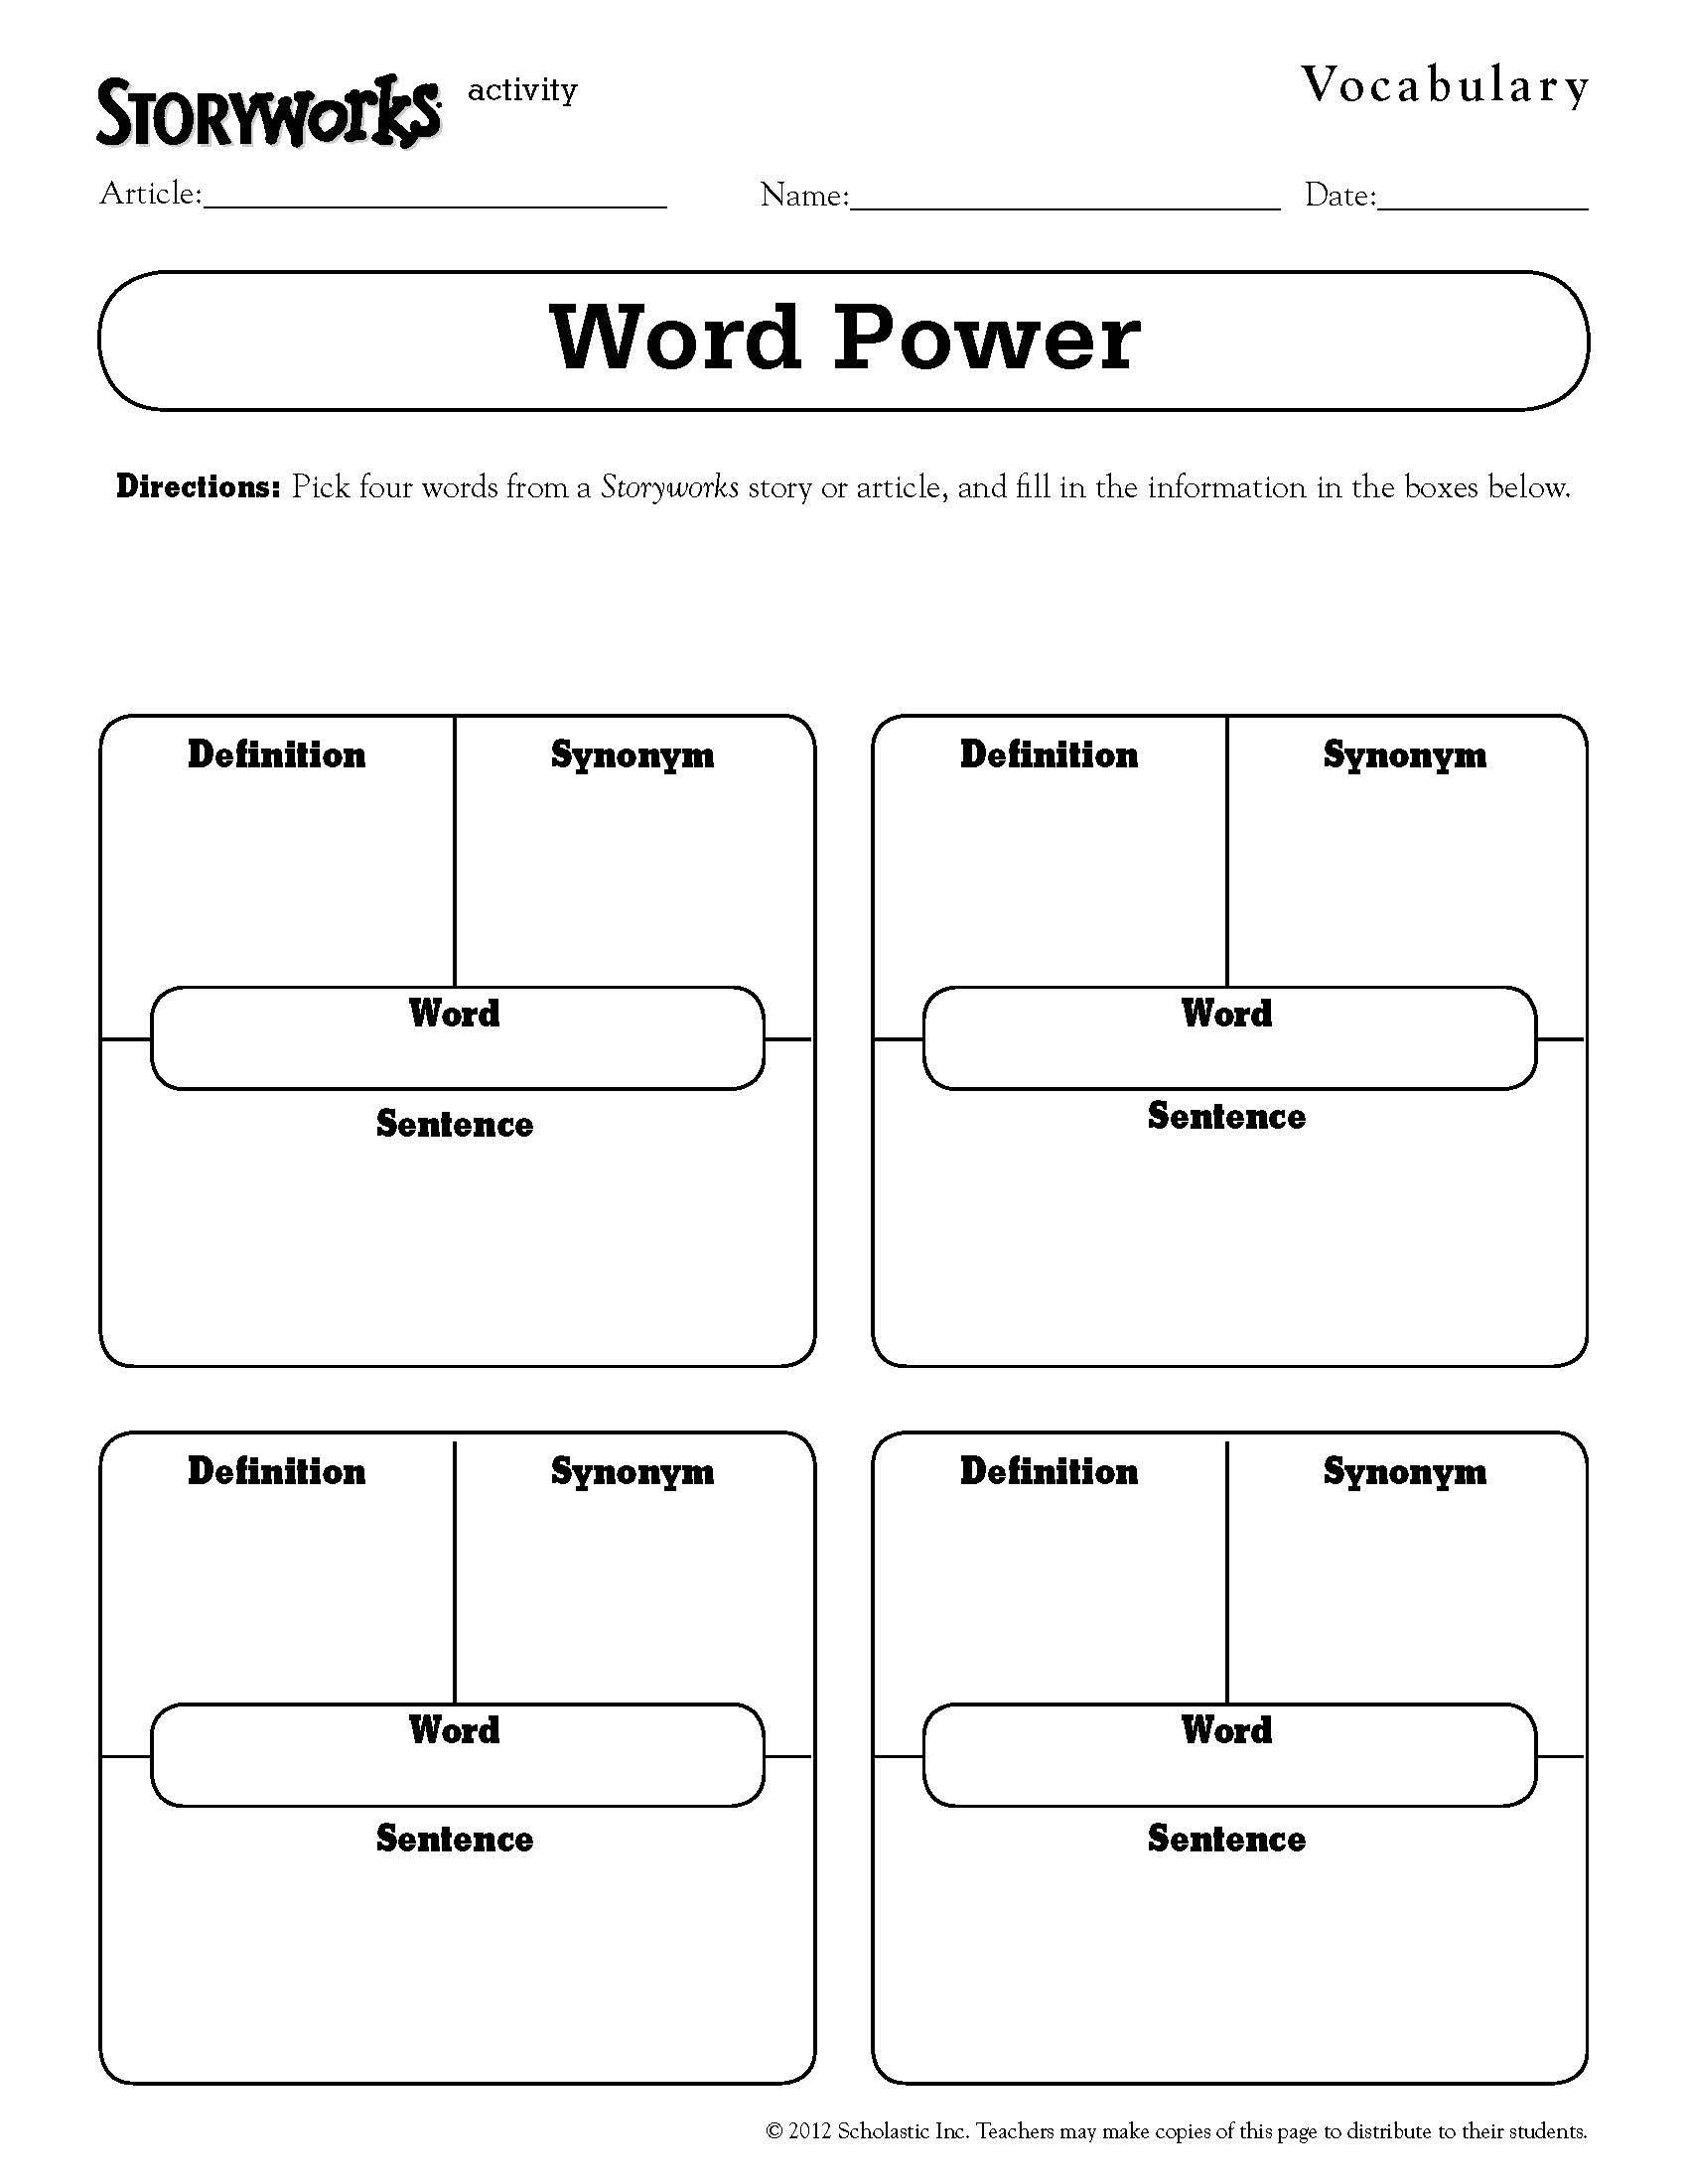 8th Grade Vocabulary Worksheets Quick and Easy Vocabulary Activity Use It with Any Text